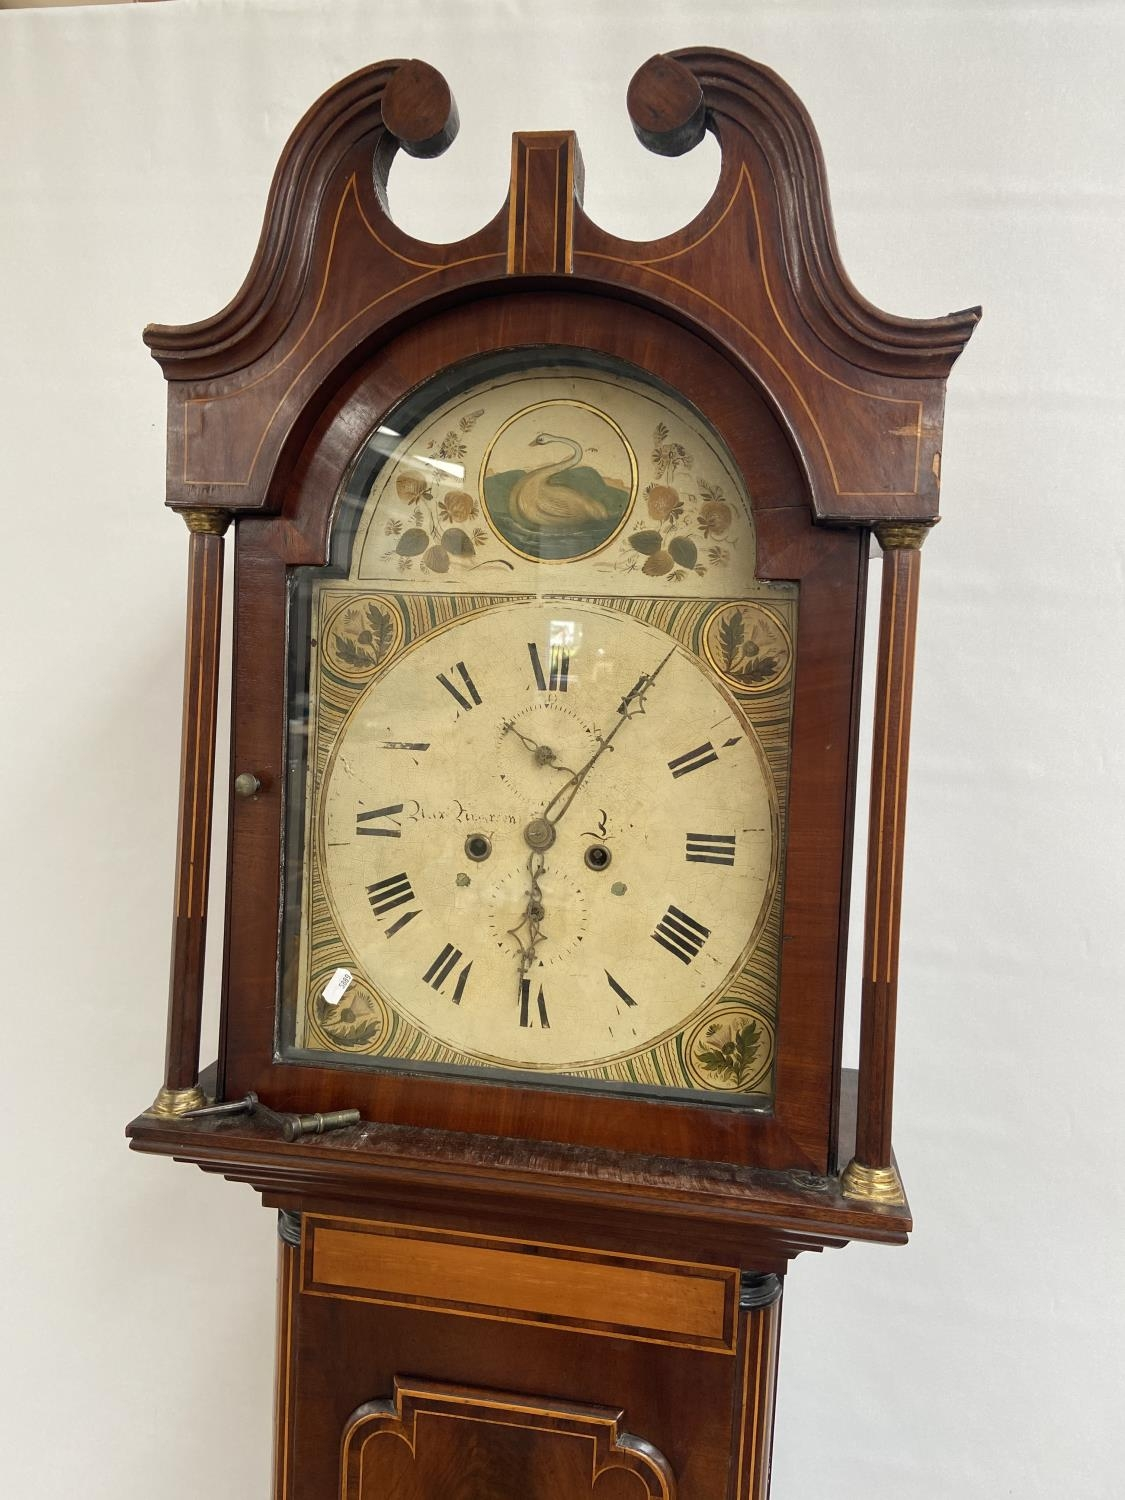 A 19th century Grandfather clock in a working condition [24x44x24cm] - Image 6 of 12